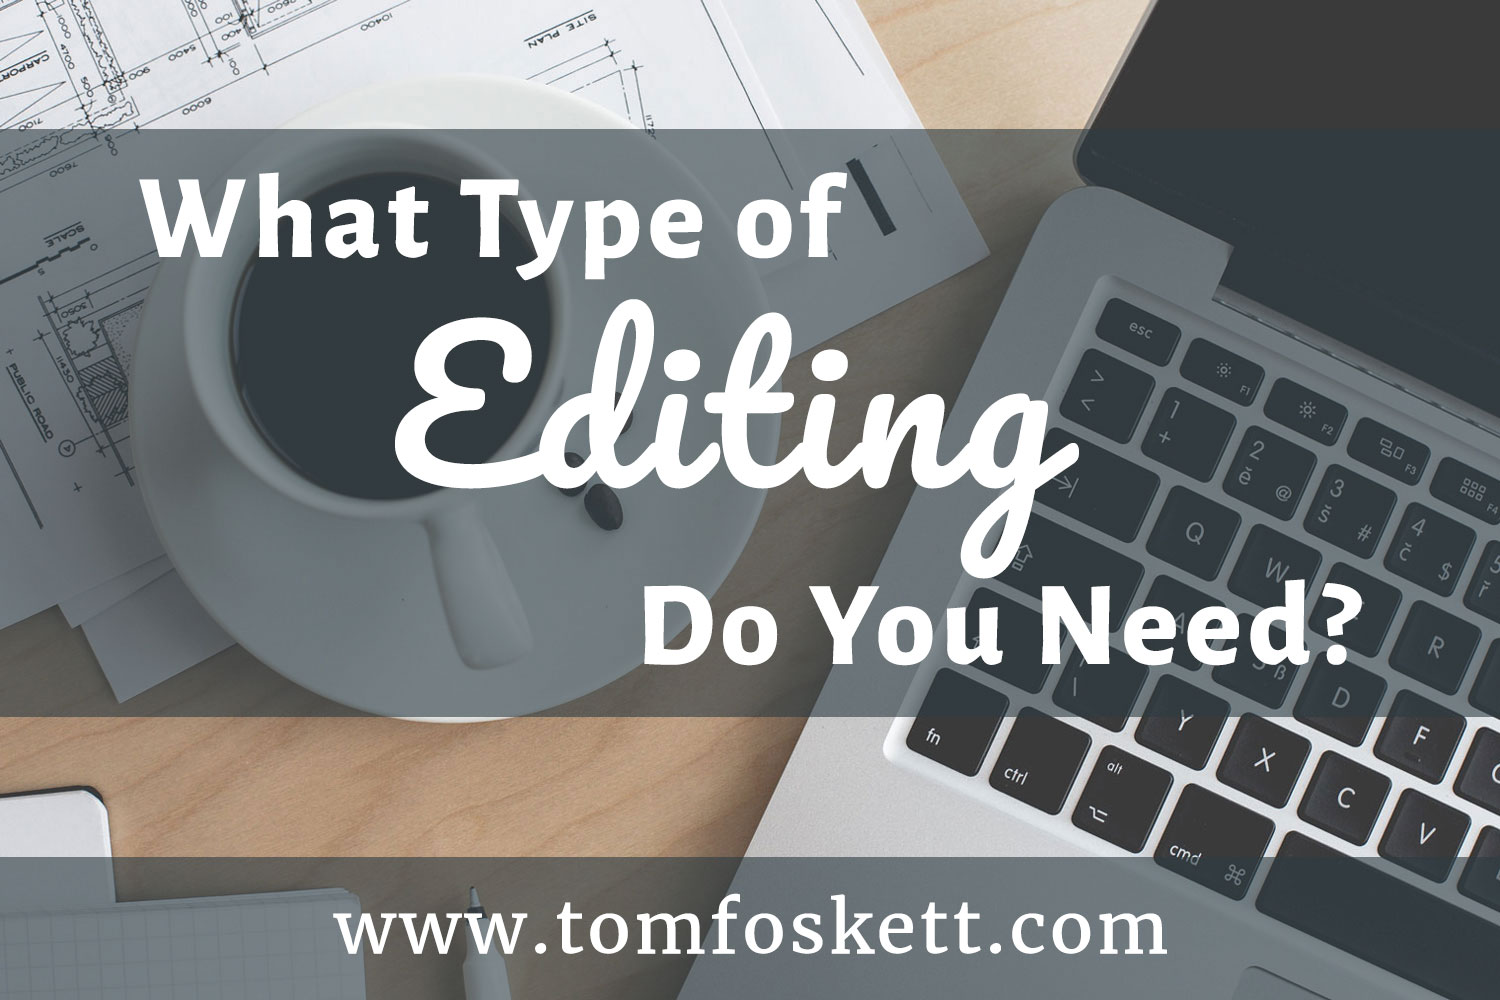 What Type of Editing Do You Need, by Tom Foskett